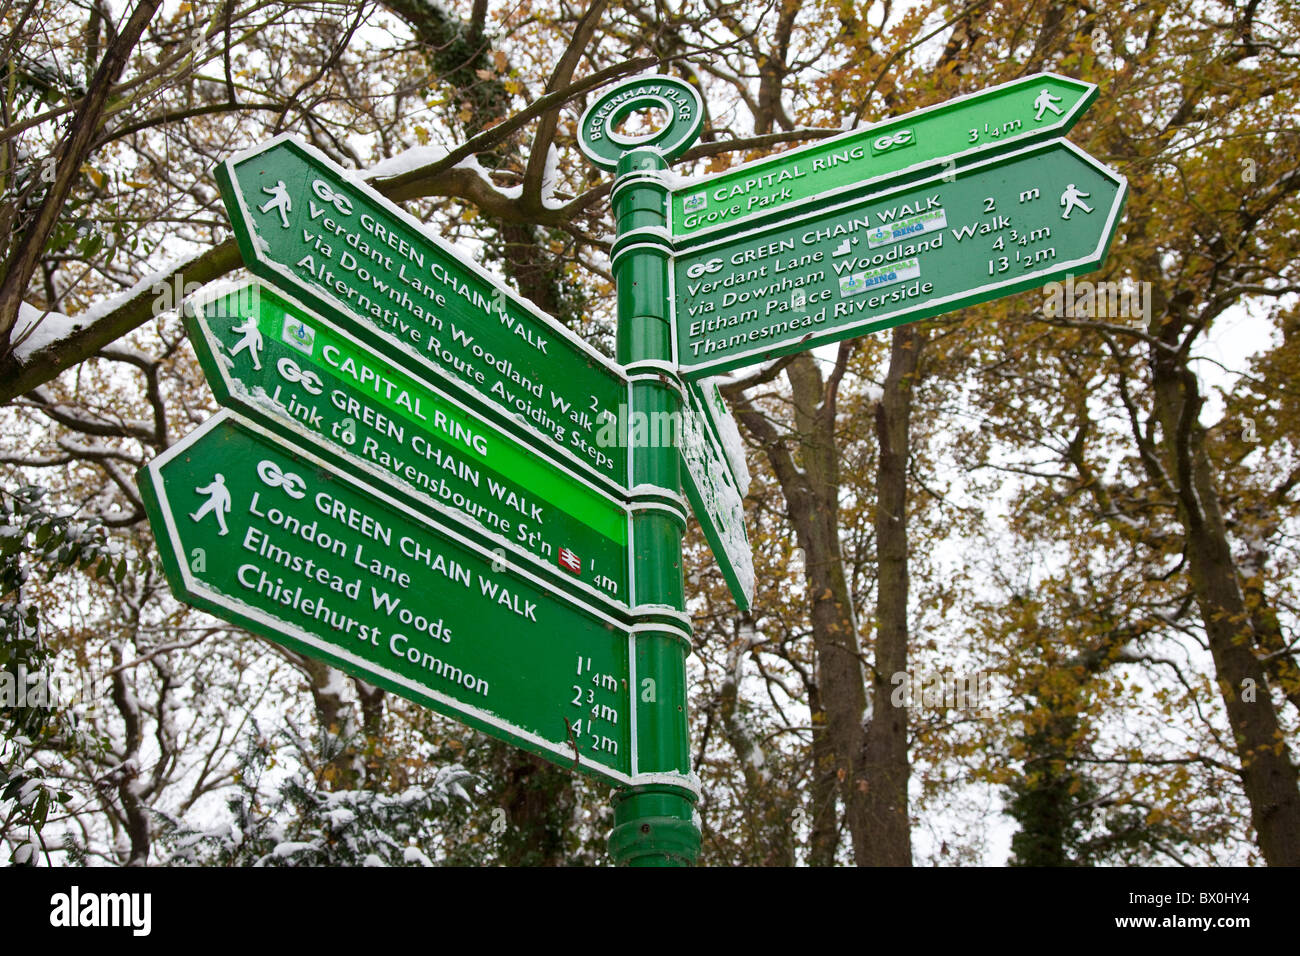 Sign footpaths including London's Green Chain Walk and Capital Ring, Beckenham, Kuent, UK, winter - Stock Image